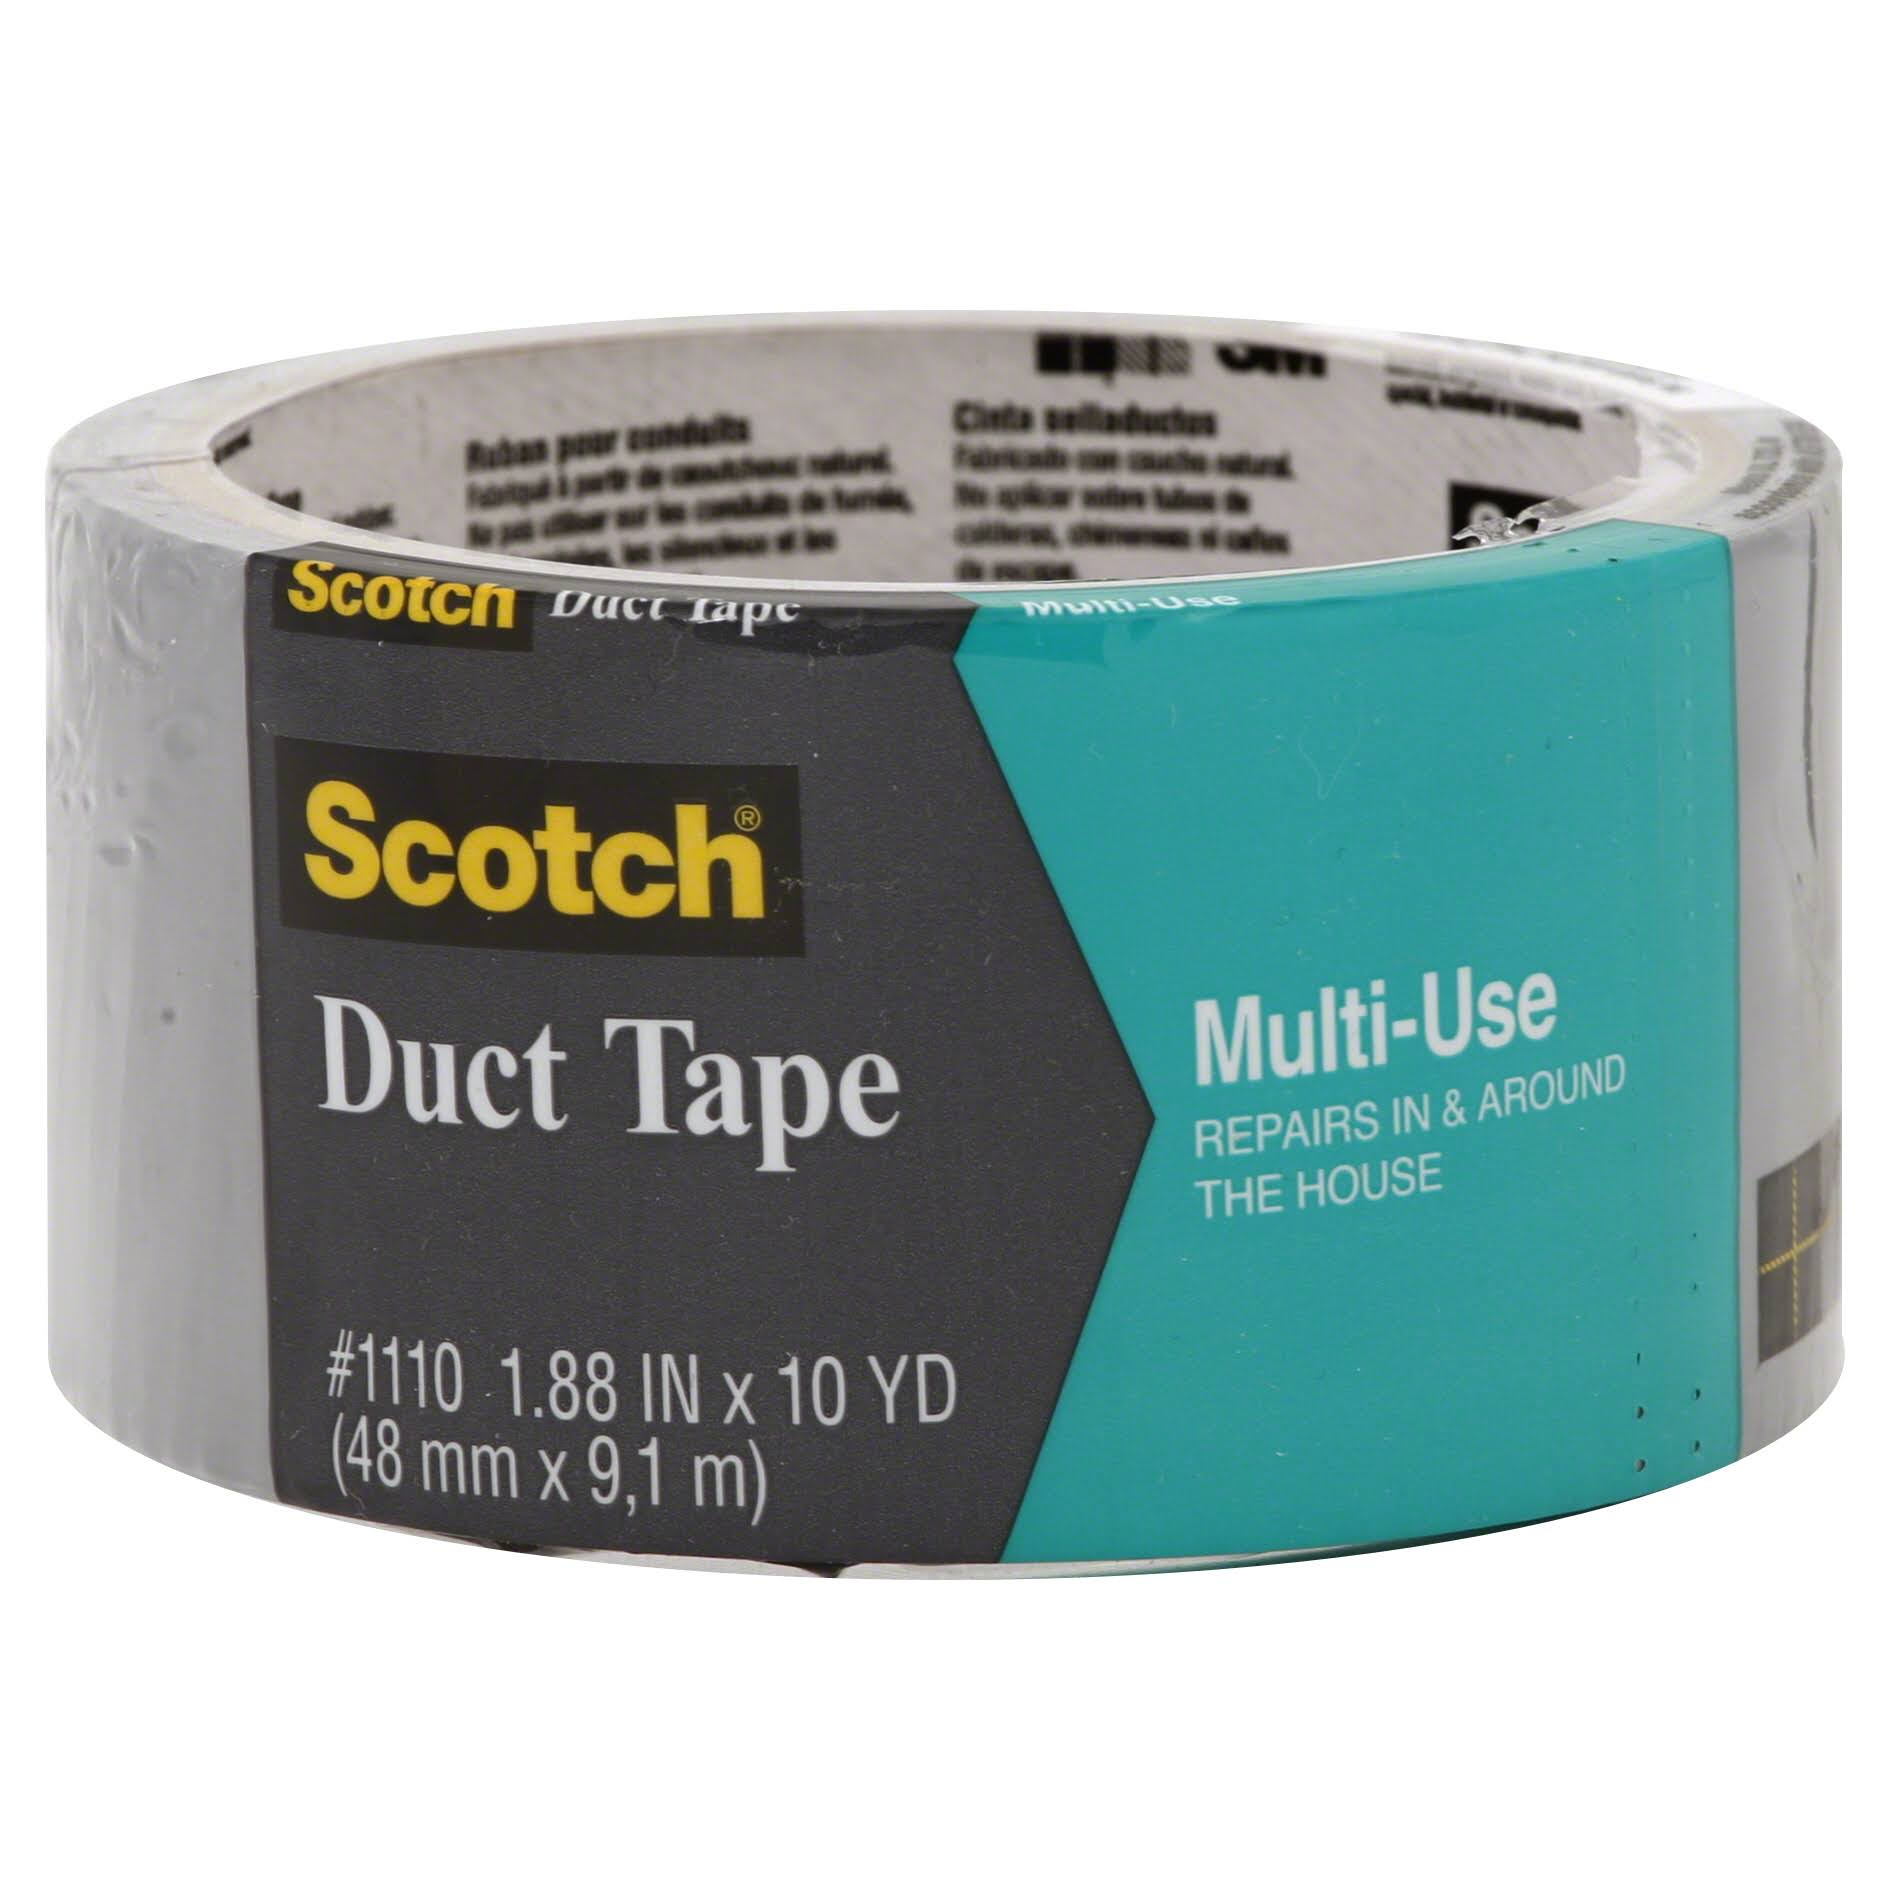 "Scotch 3M Multi Use Duct Tape - 1.88"" x 10yd"